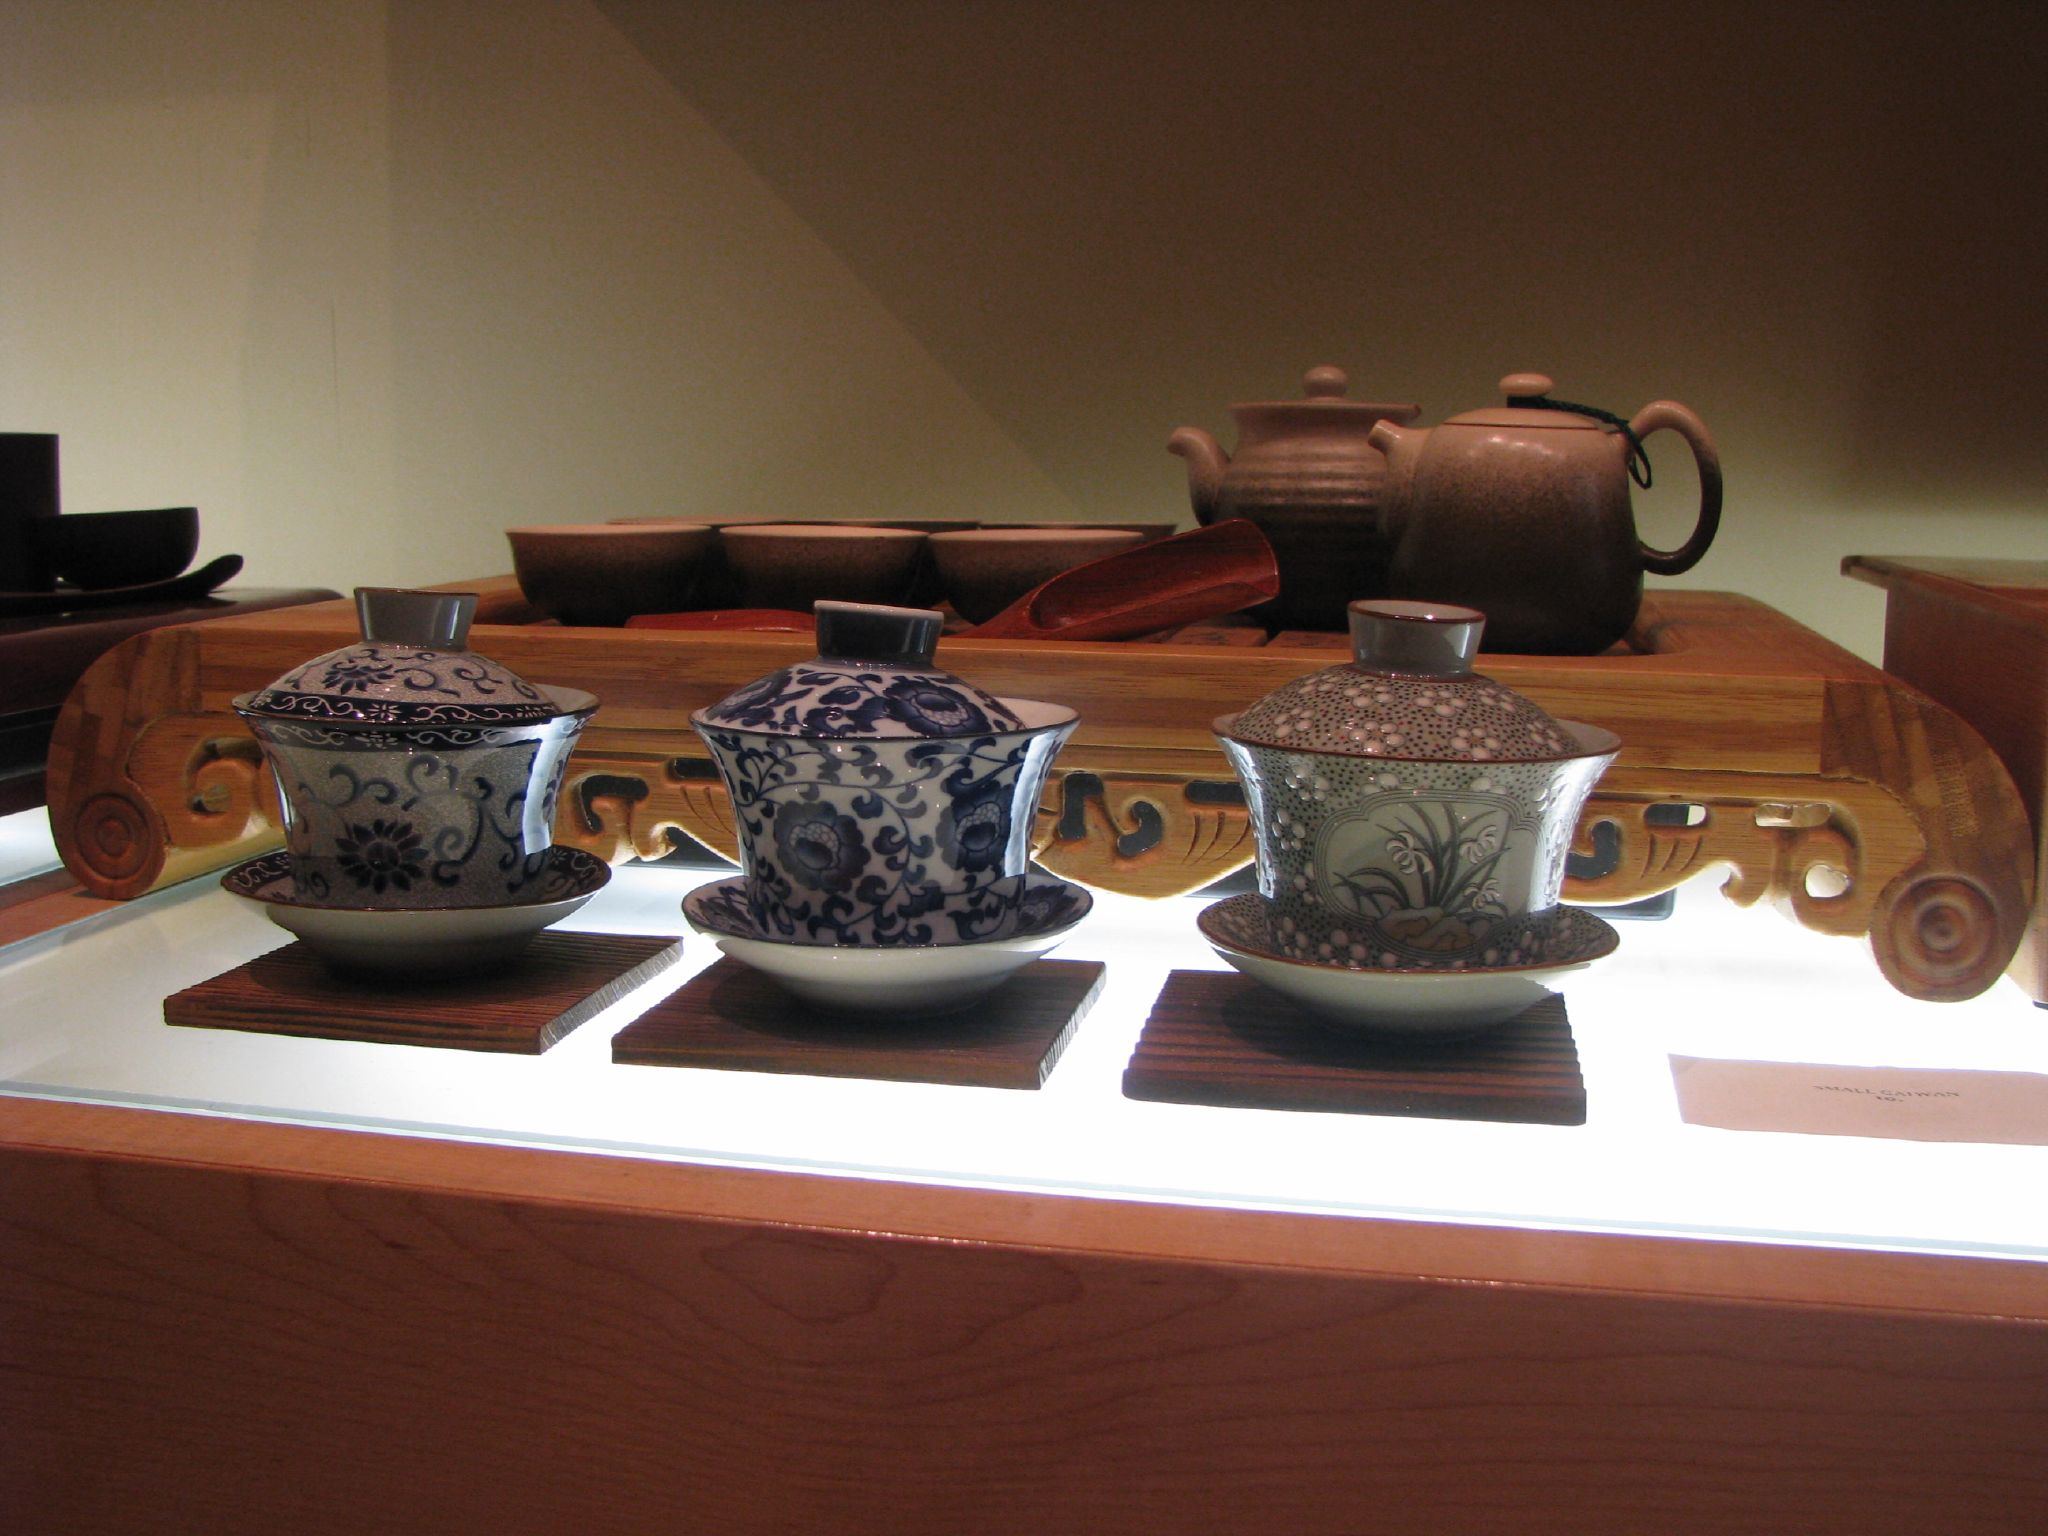 Chinese Tea Set: Necessary For Tea Generating Currently